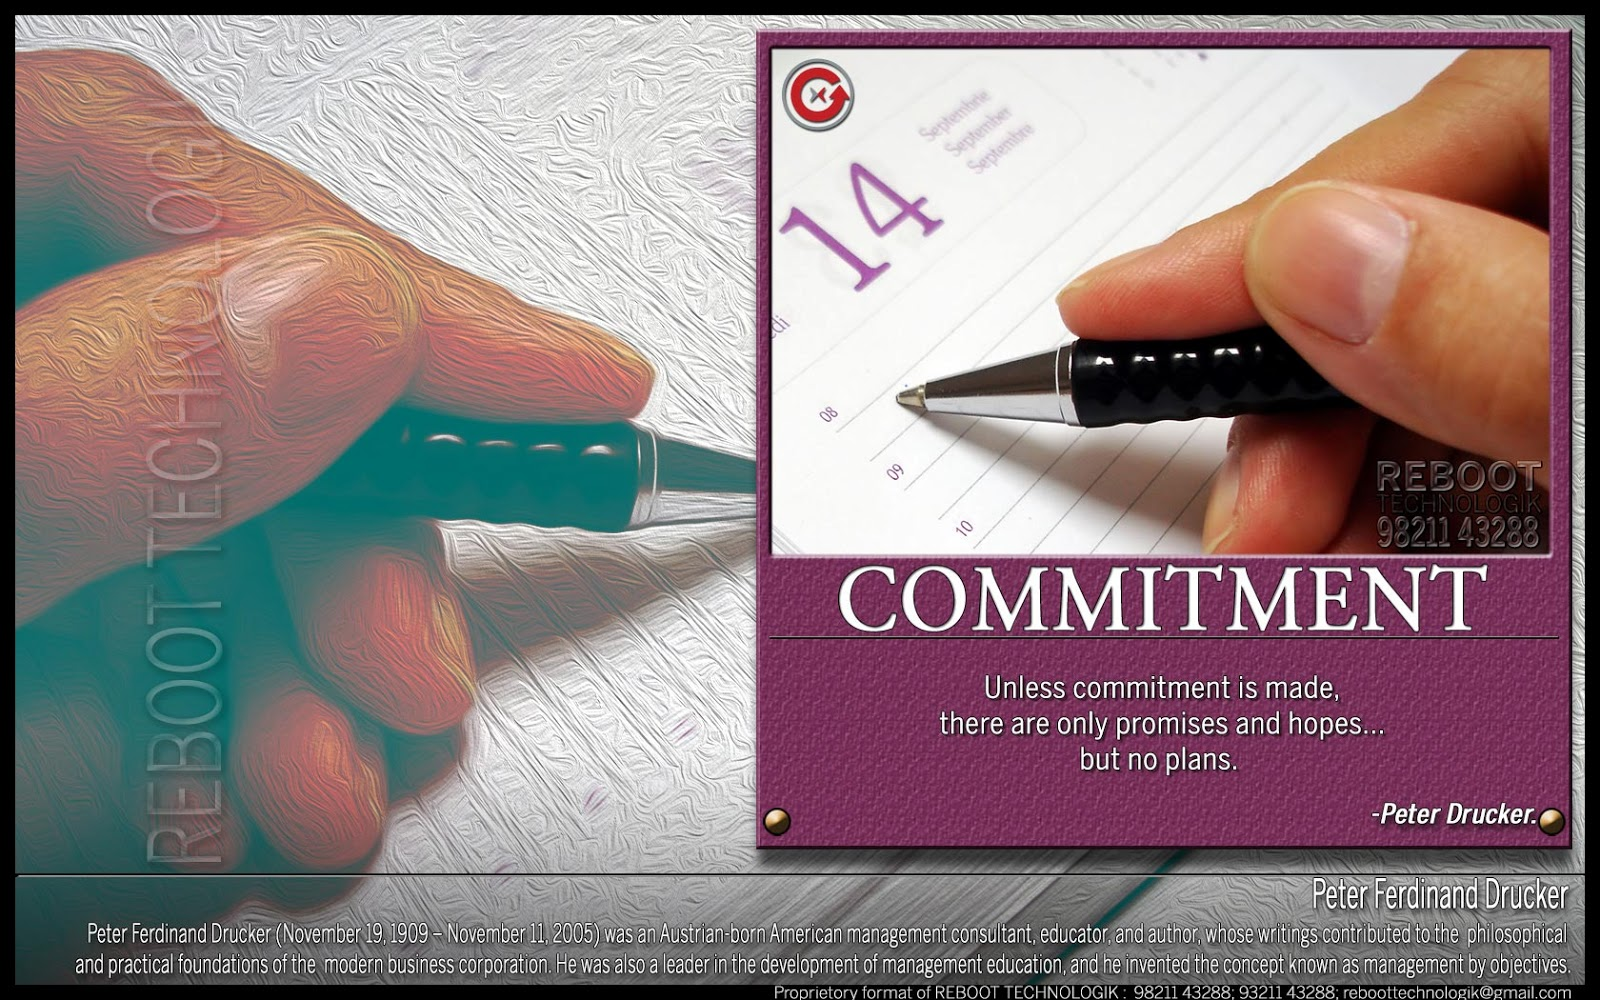 Unless Commitment Is Made, There Are Only Promises And Hopes But No Plans. - Peter Drucker